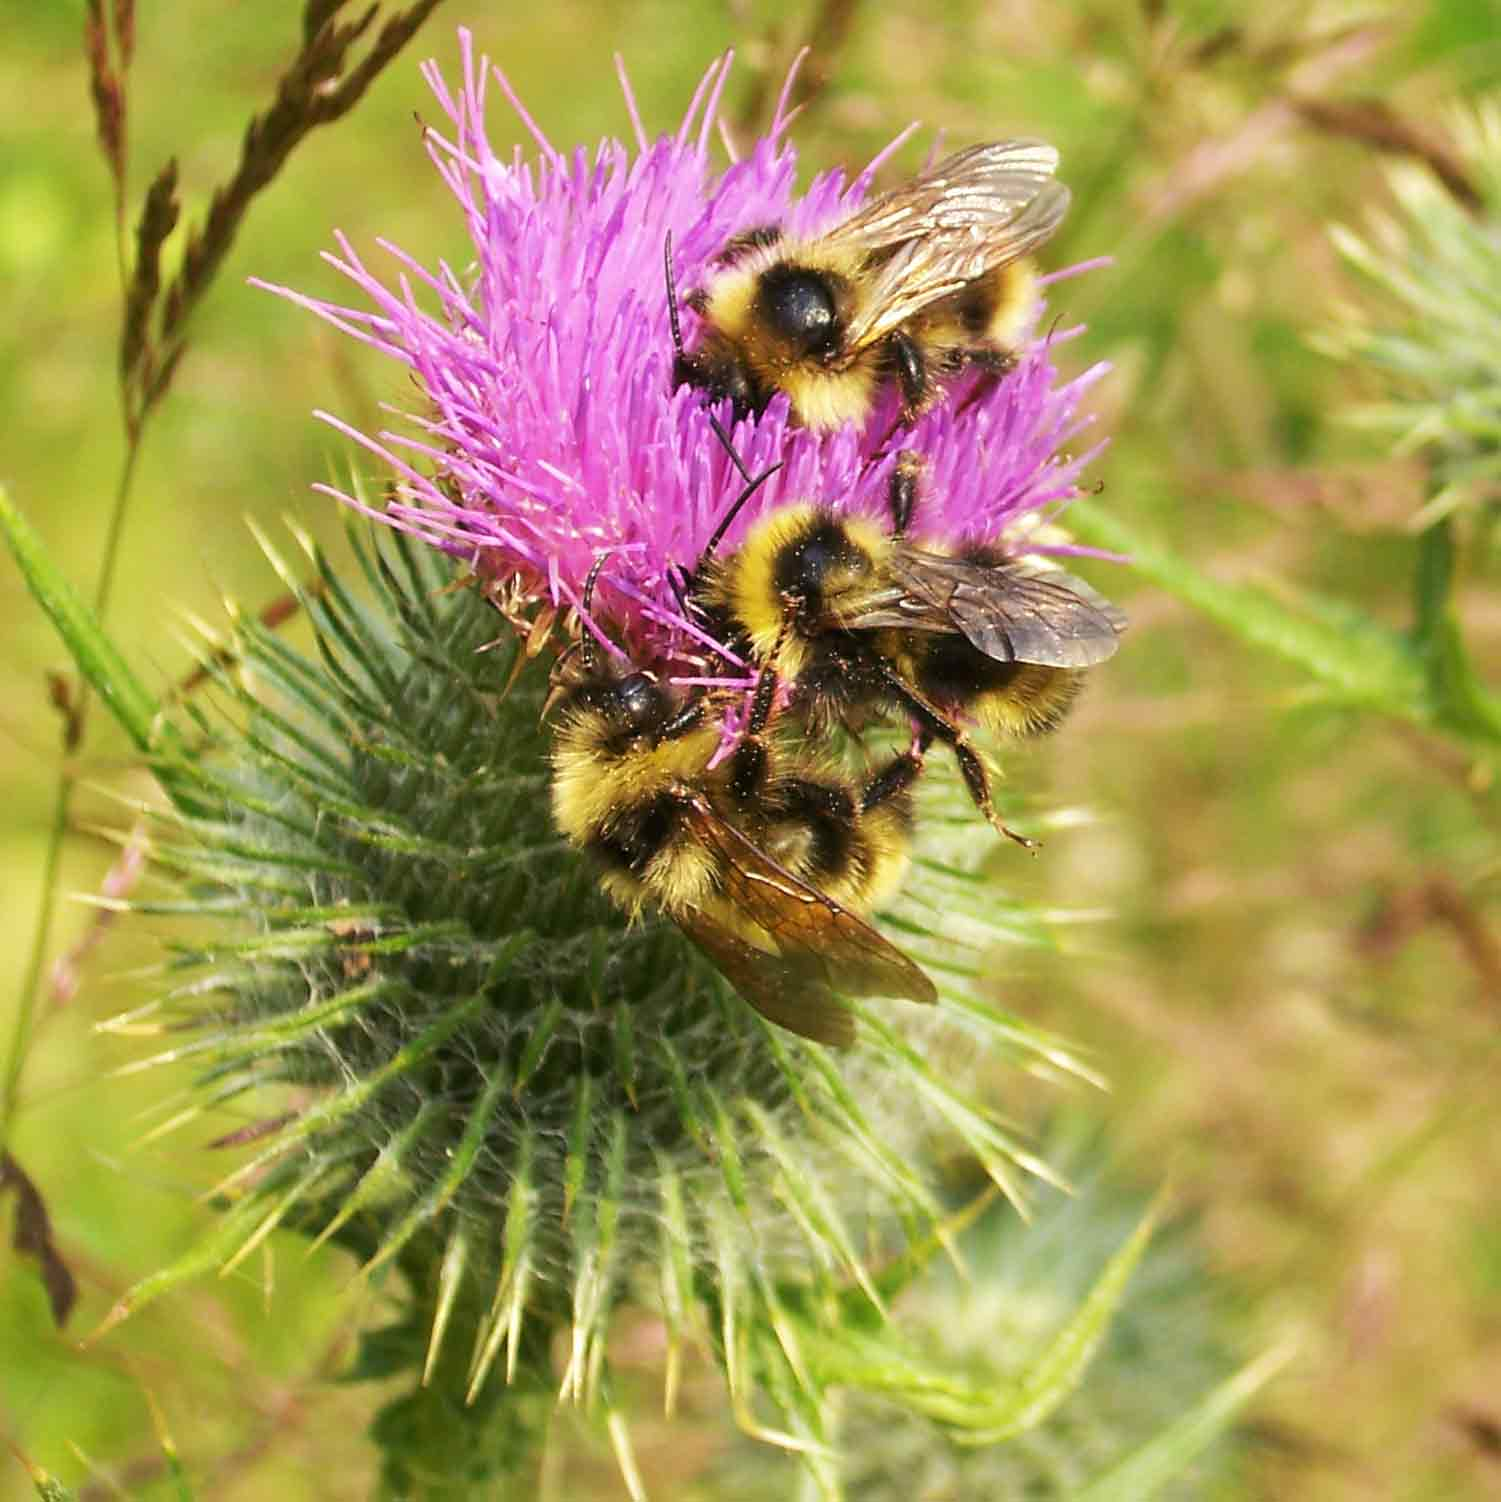 Three bees on a pink flower